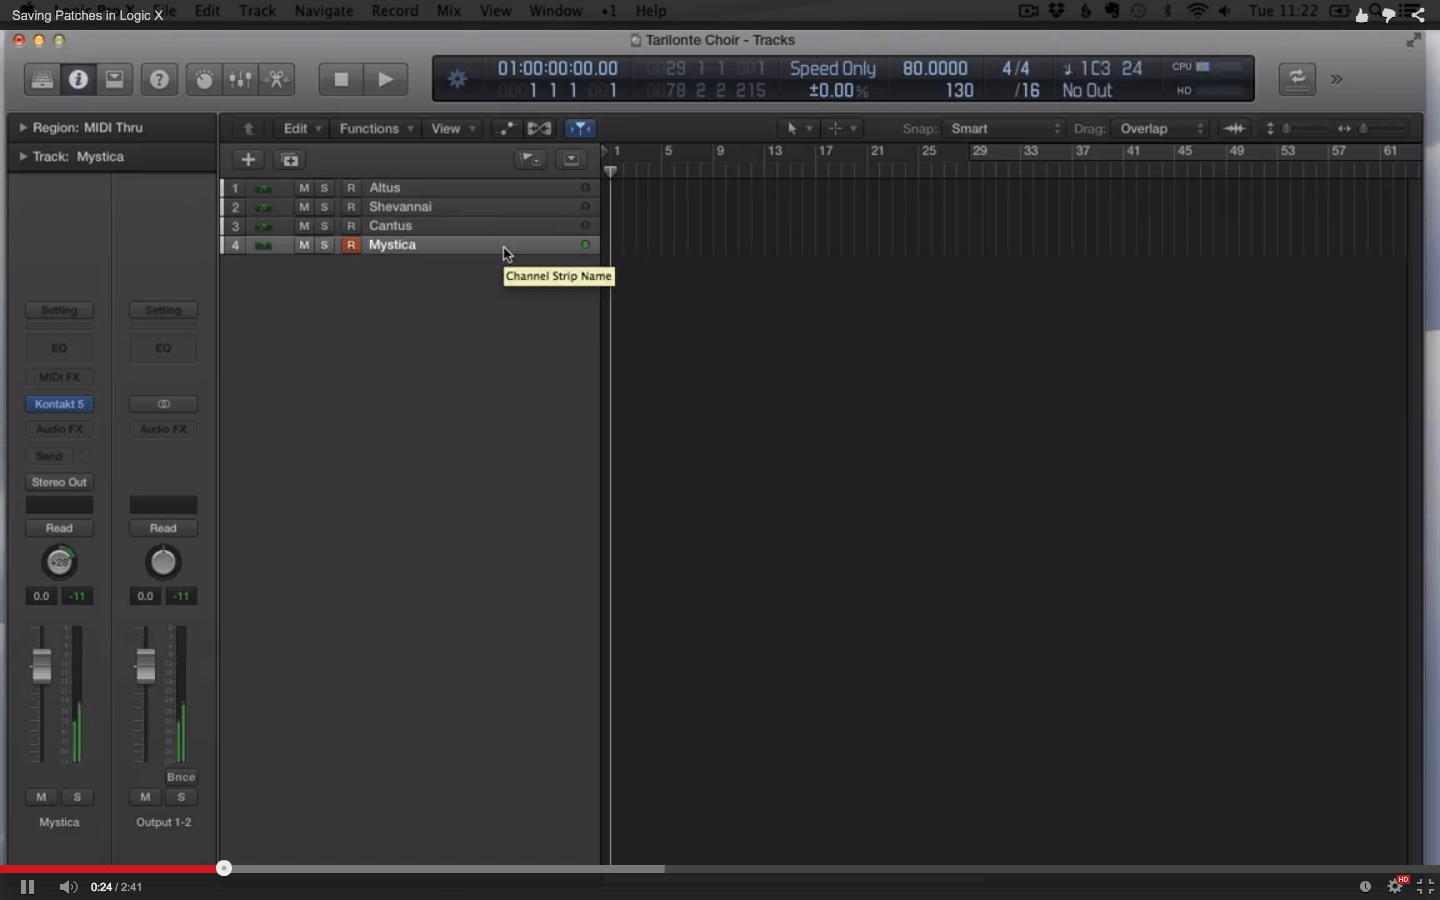 Saving Patches in Logic X